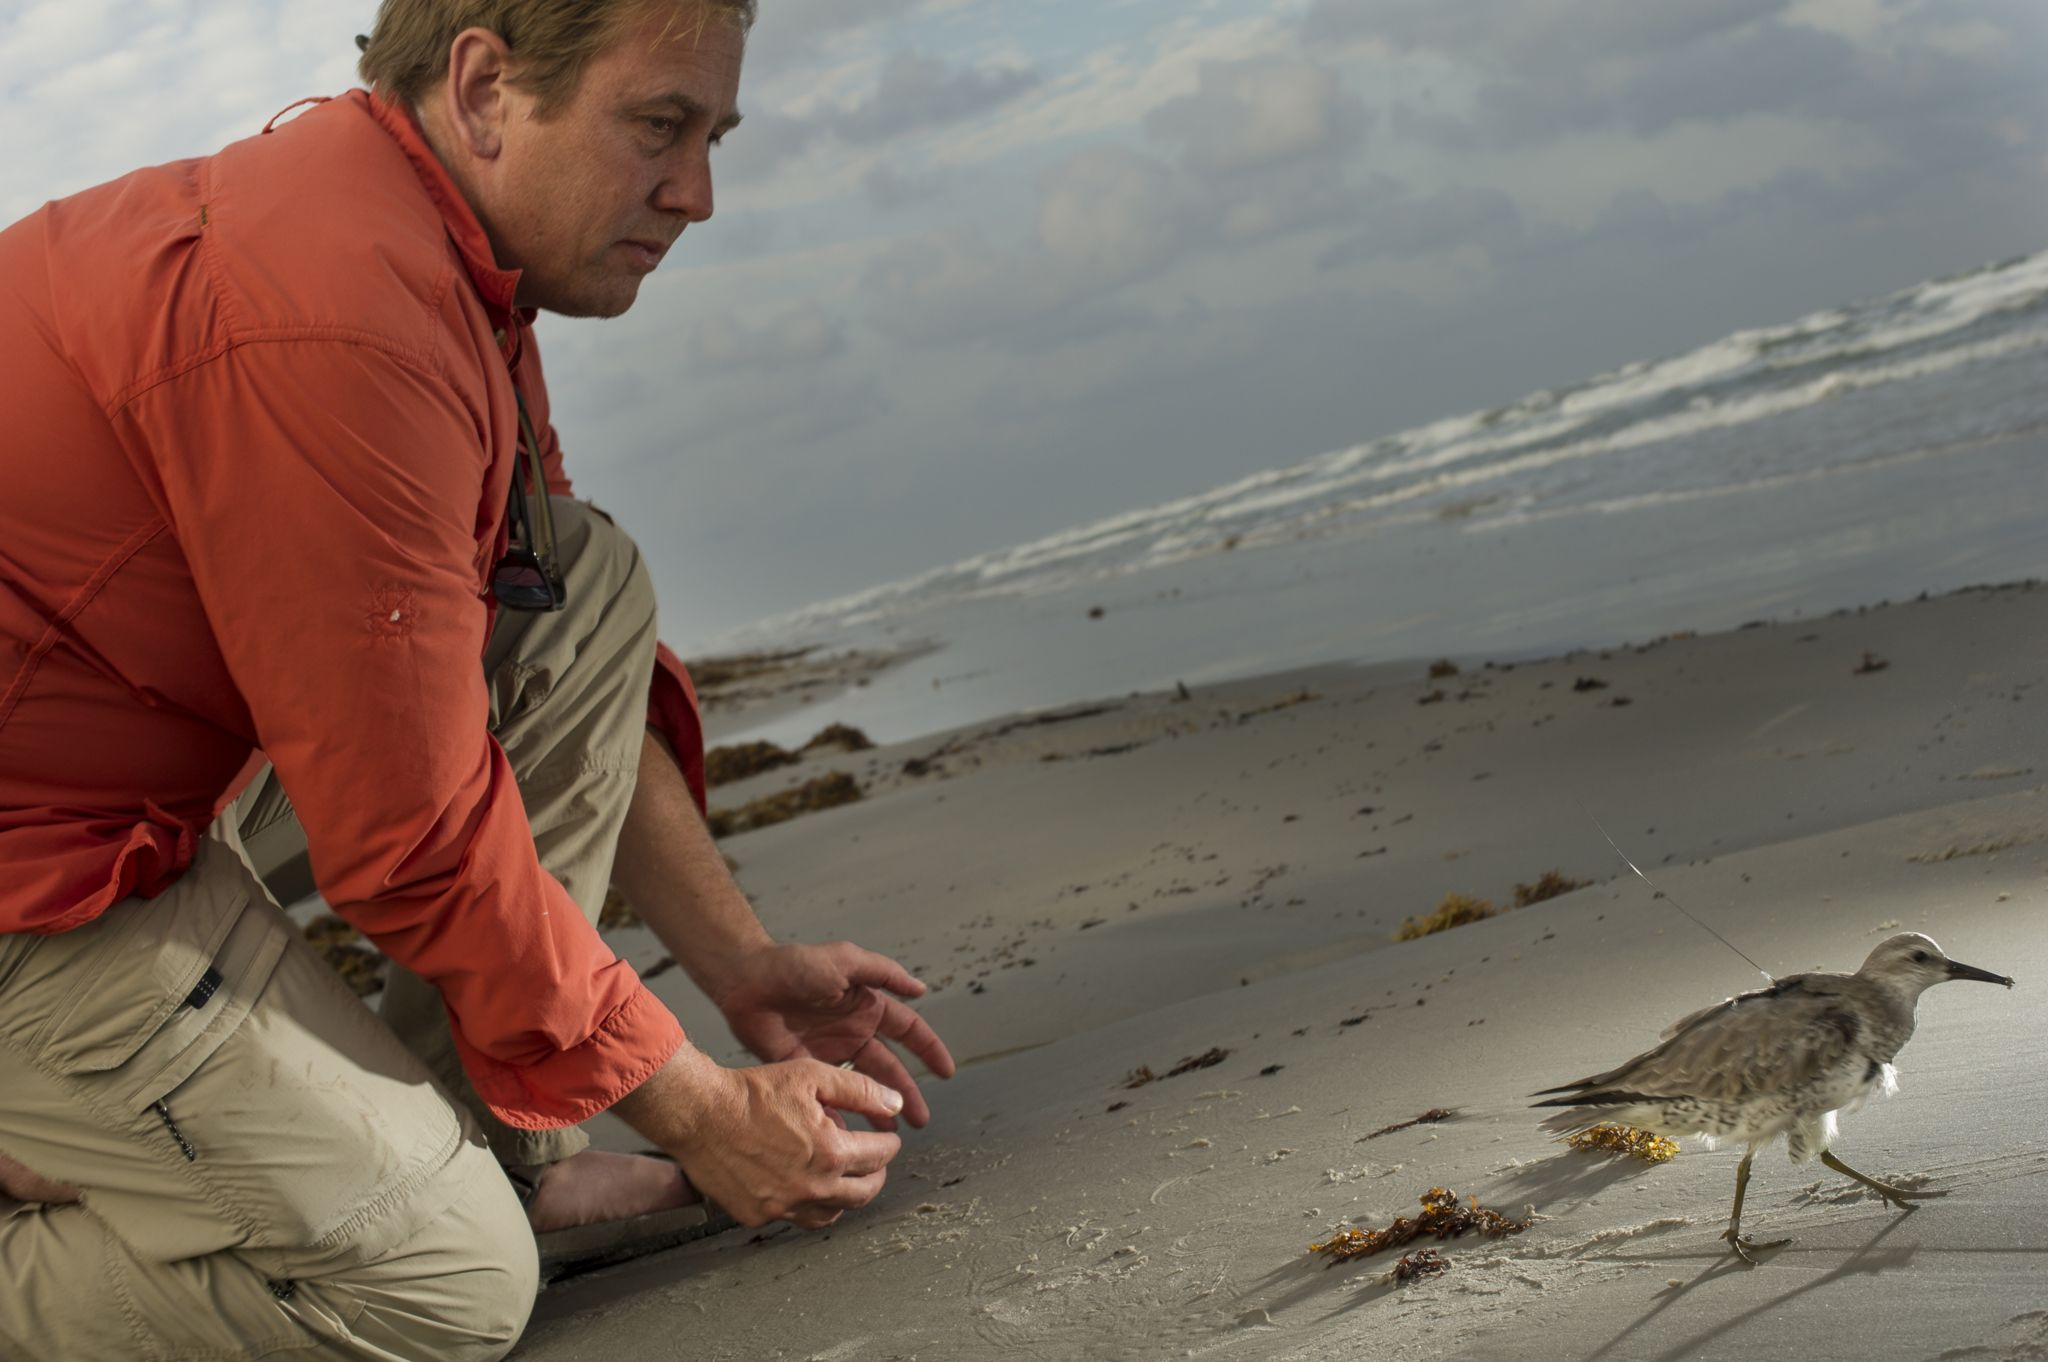 Peter Marra releasing a red knot bird after tagging it in Texas